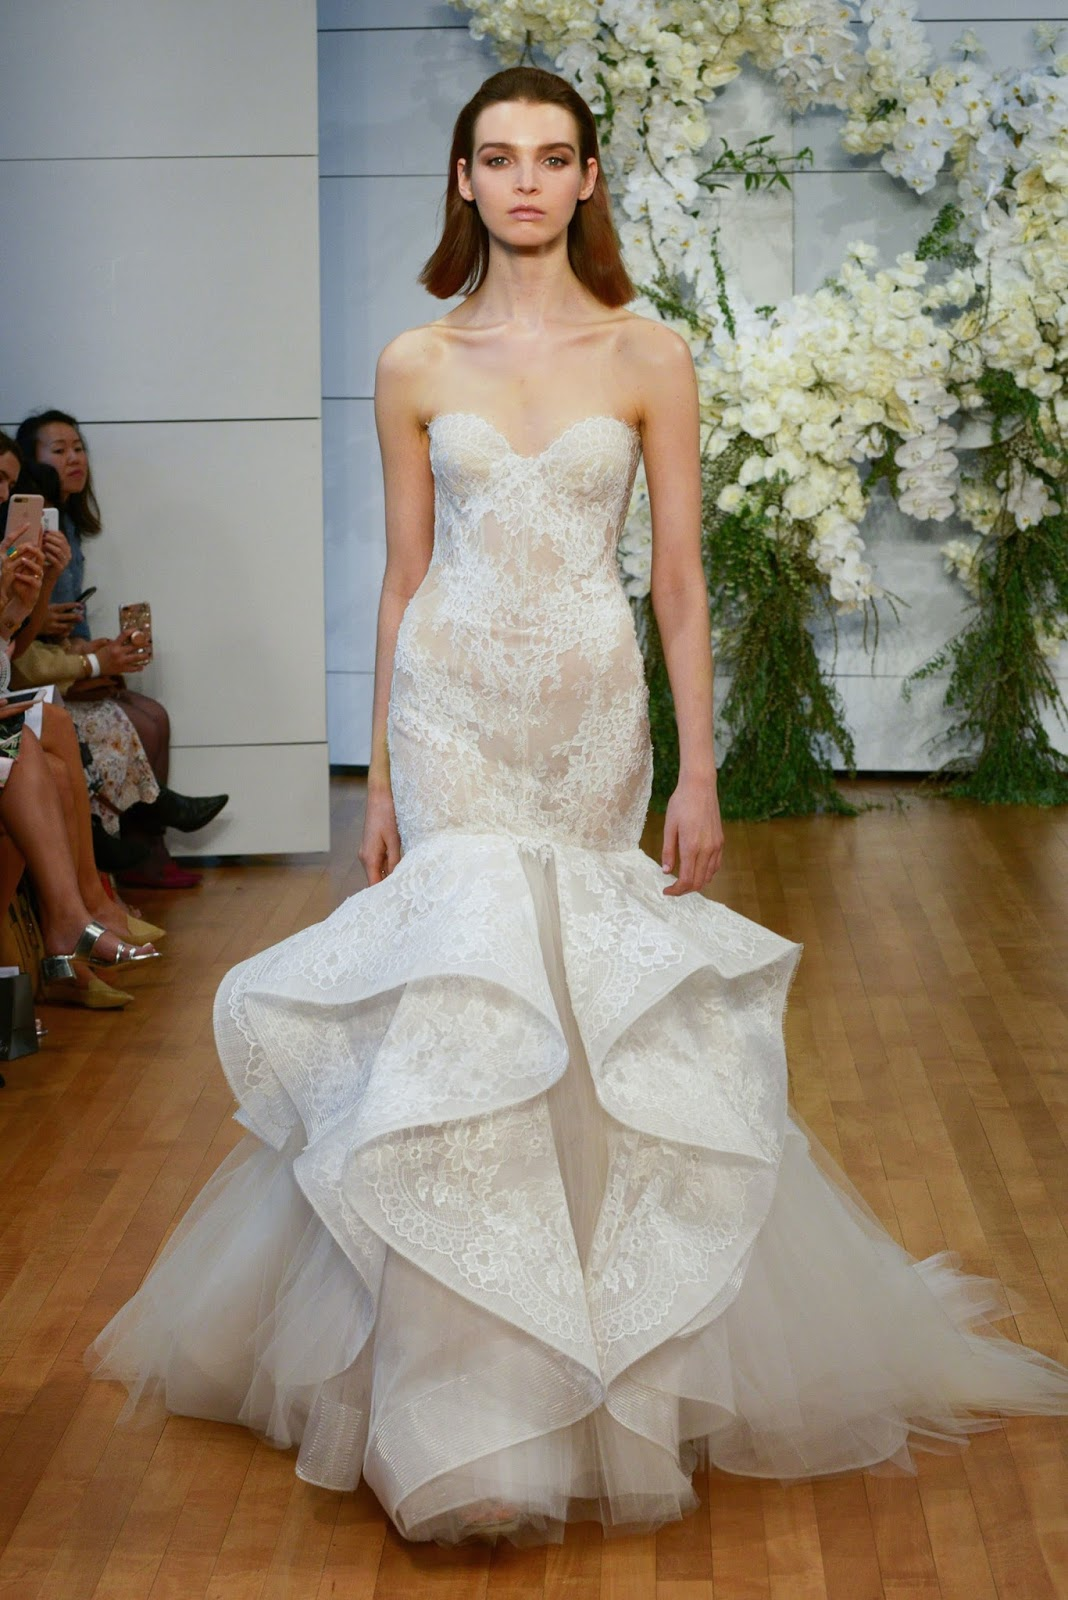 BRIDAL GLAMOUR: MONIQUE LHUILLIER | ZsaZsa Bellagio – Like No Other